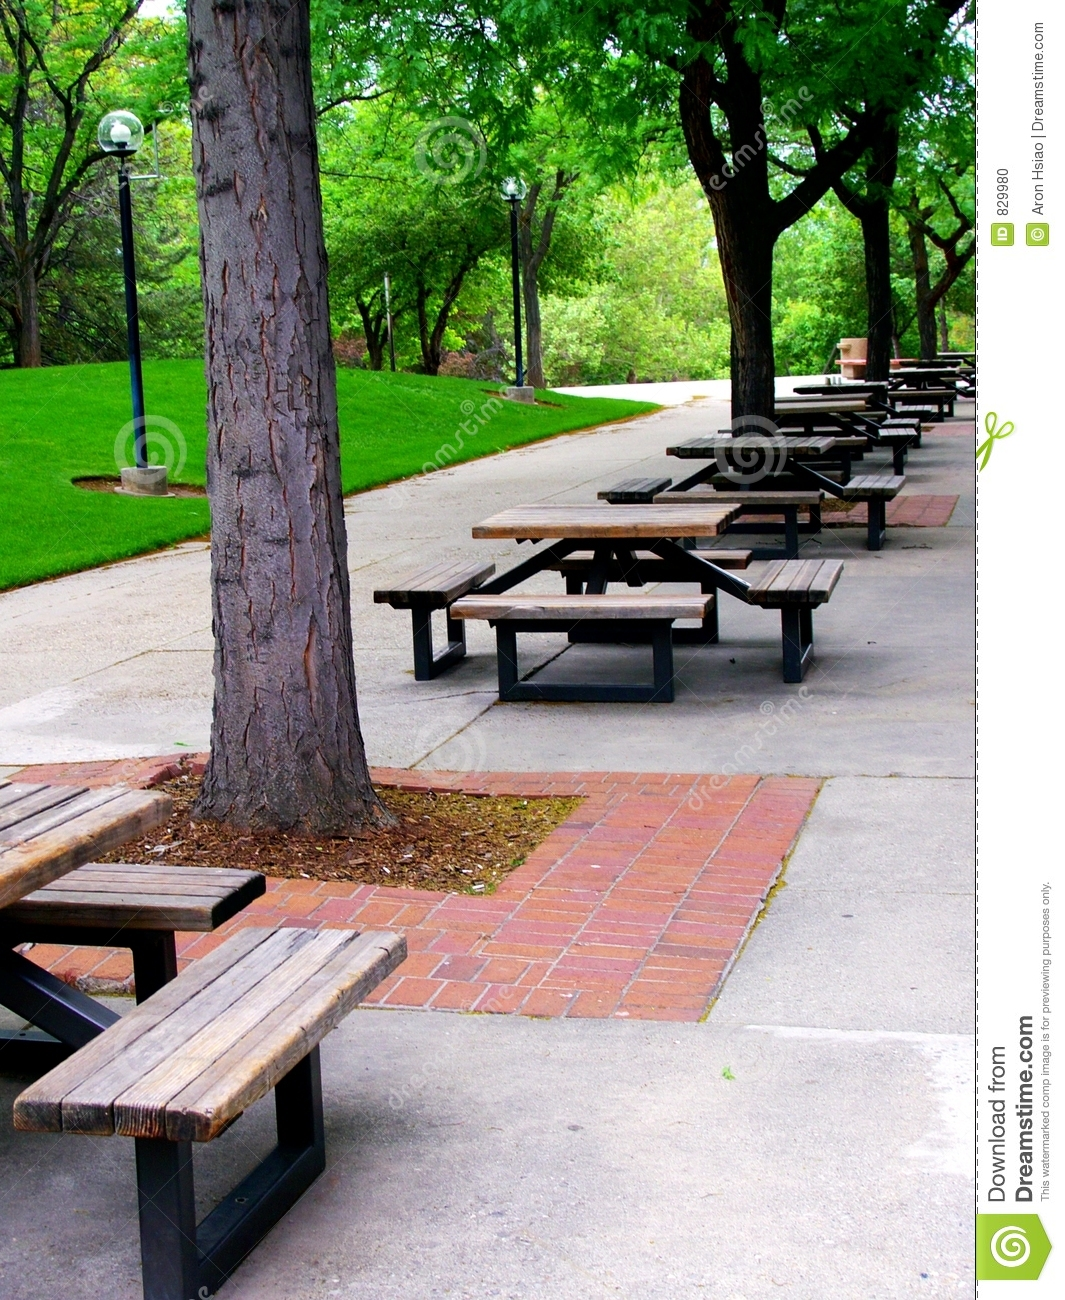 Long rows of outdoor picnic or lunch tables